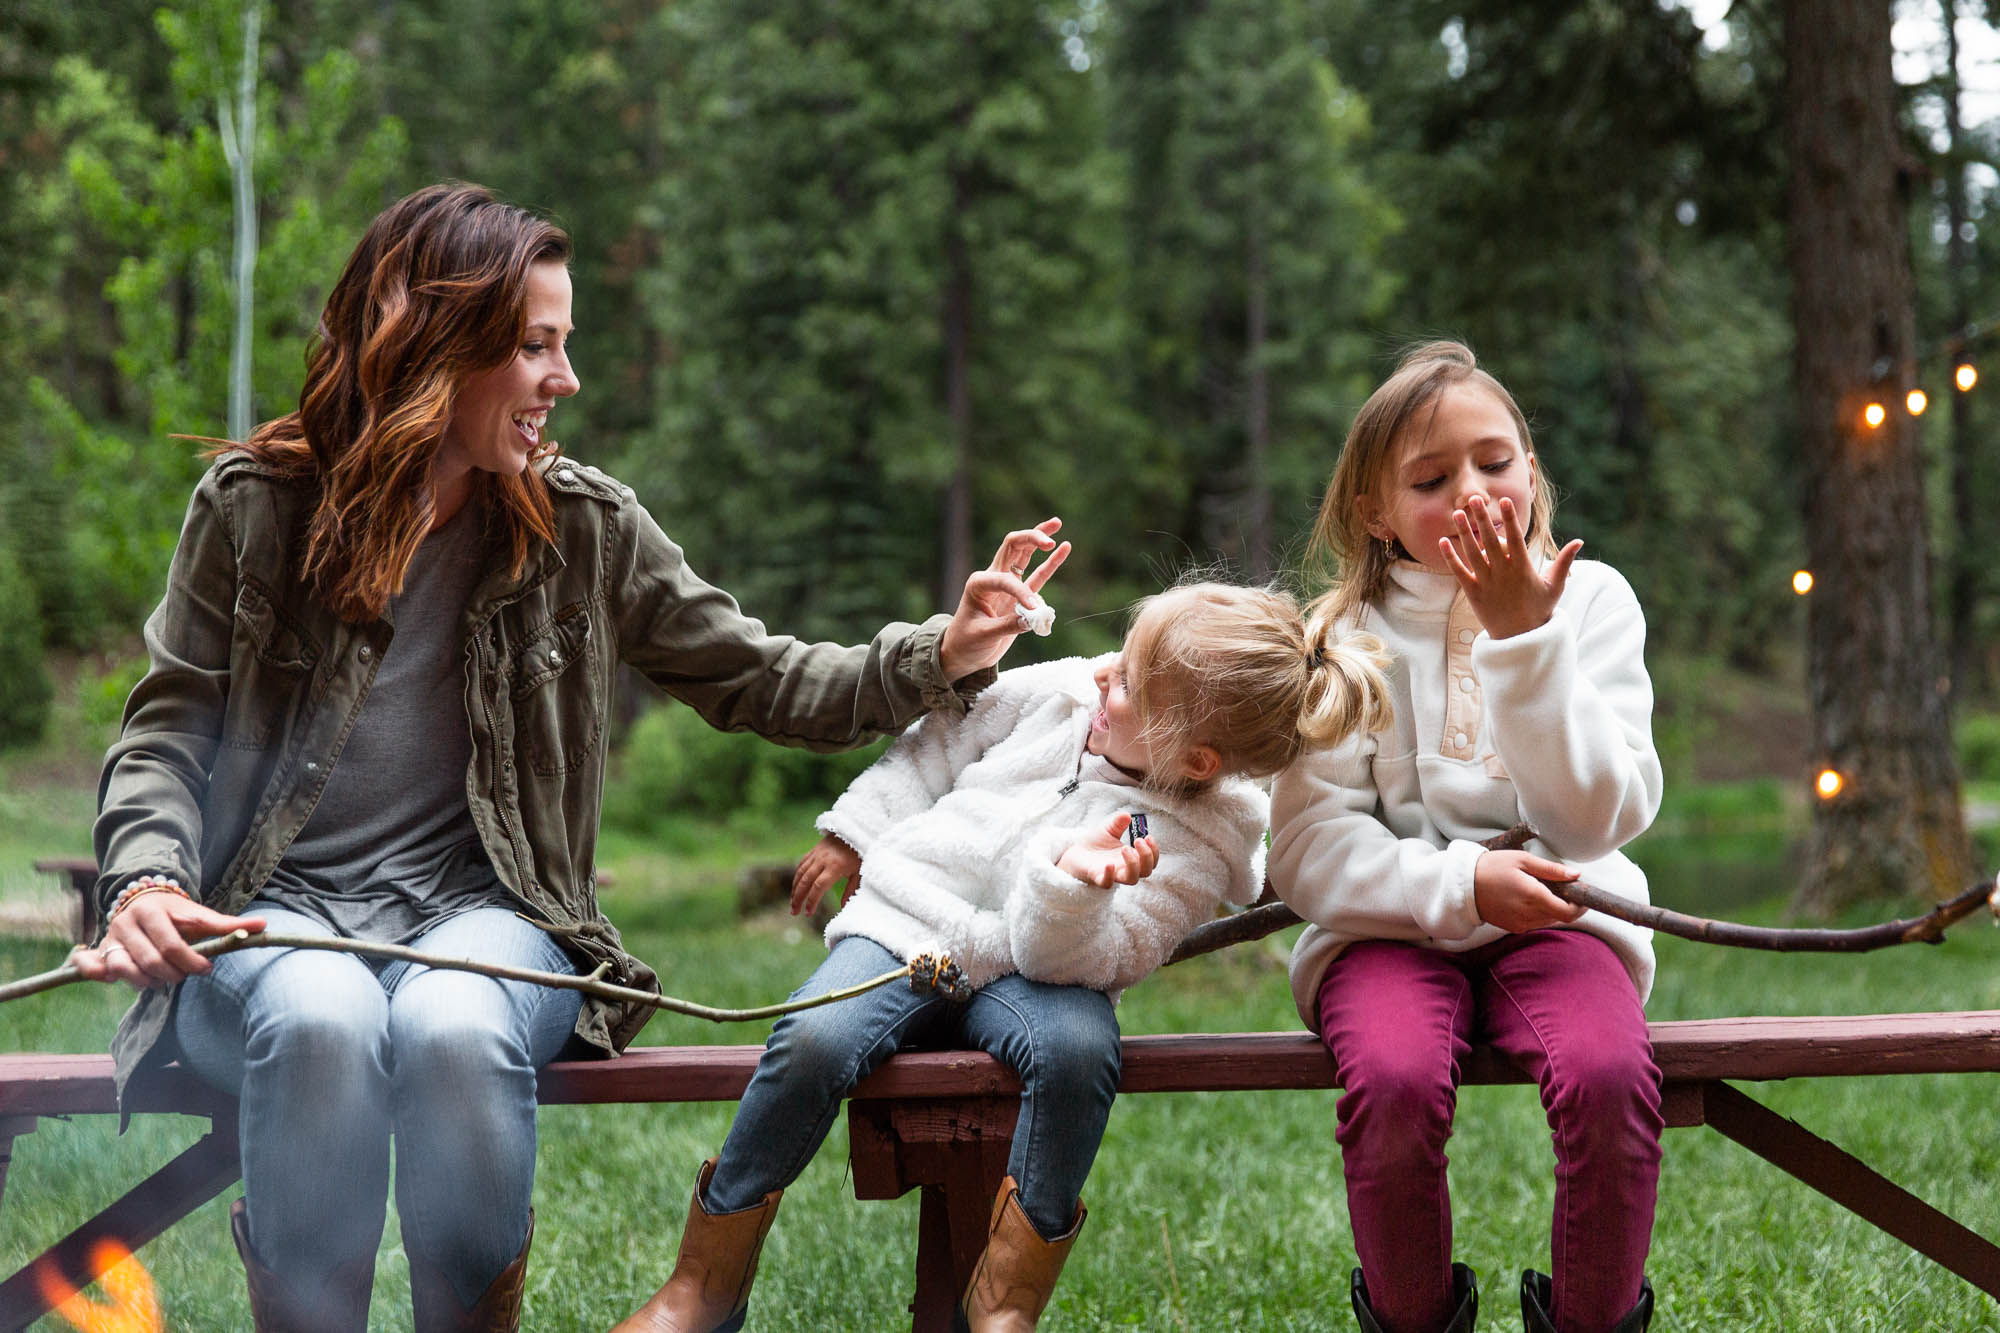 Families searching for a device free vacation can enjoy toasted marshmallows instead of WiFi at Greenhorn Ranch